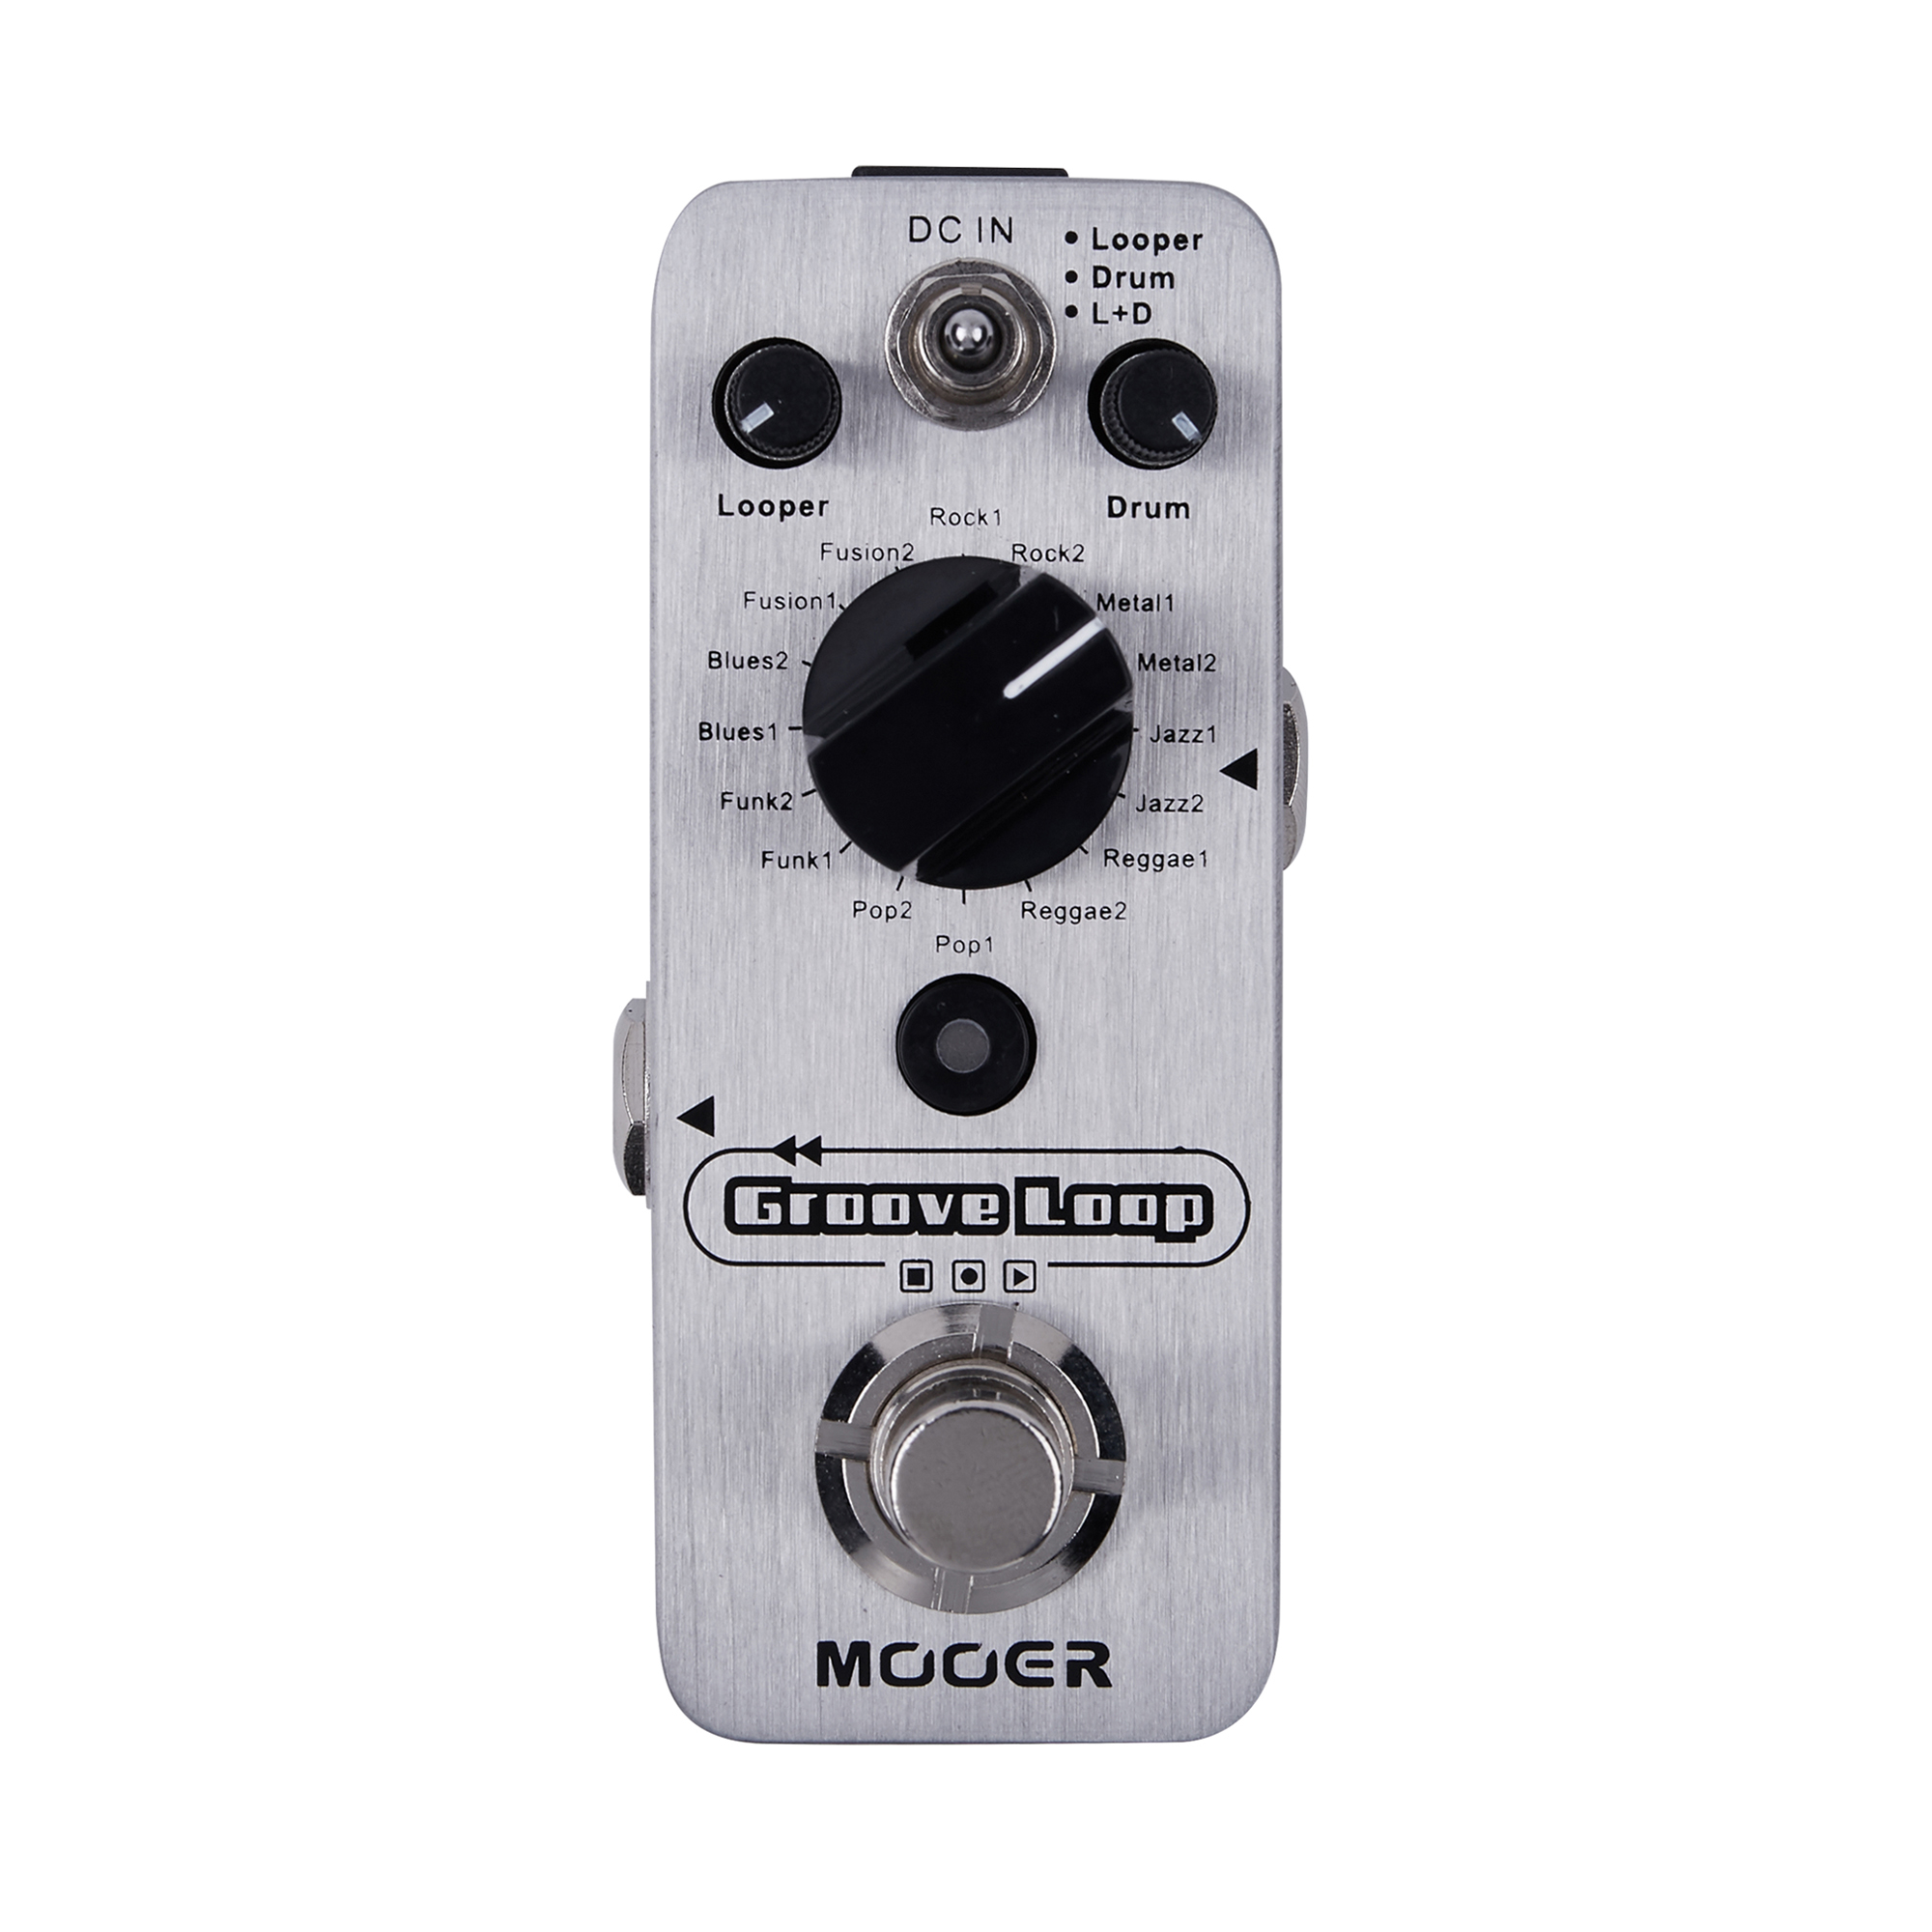 Mooer Groove Loop Guitar Effects Pedal Tap Tempo Control Drum Machine Acoustic Electric Bass Guitar electric guitar effector multi function guitar composition upgrade stylesound tuner drum machine integrated digital effects